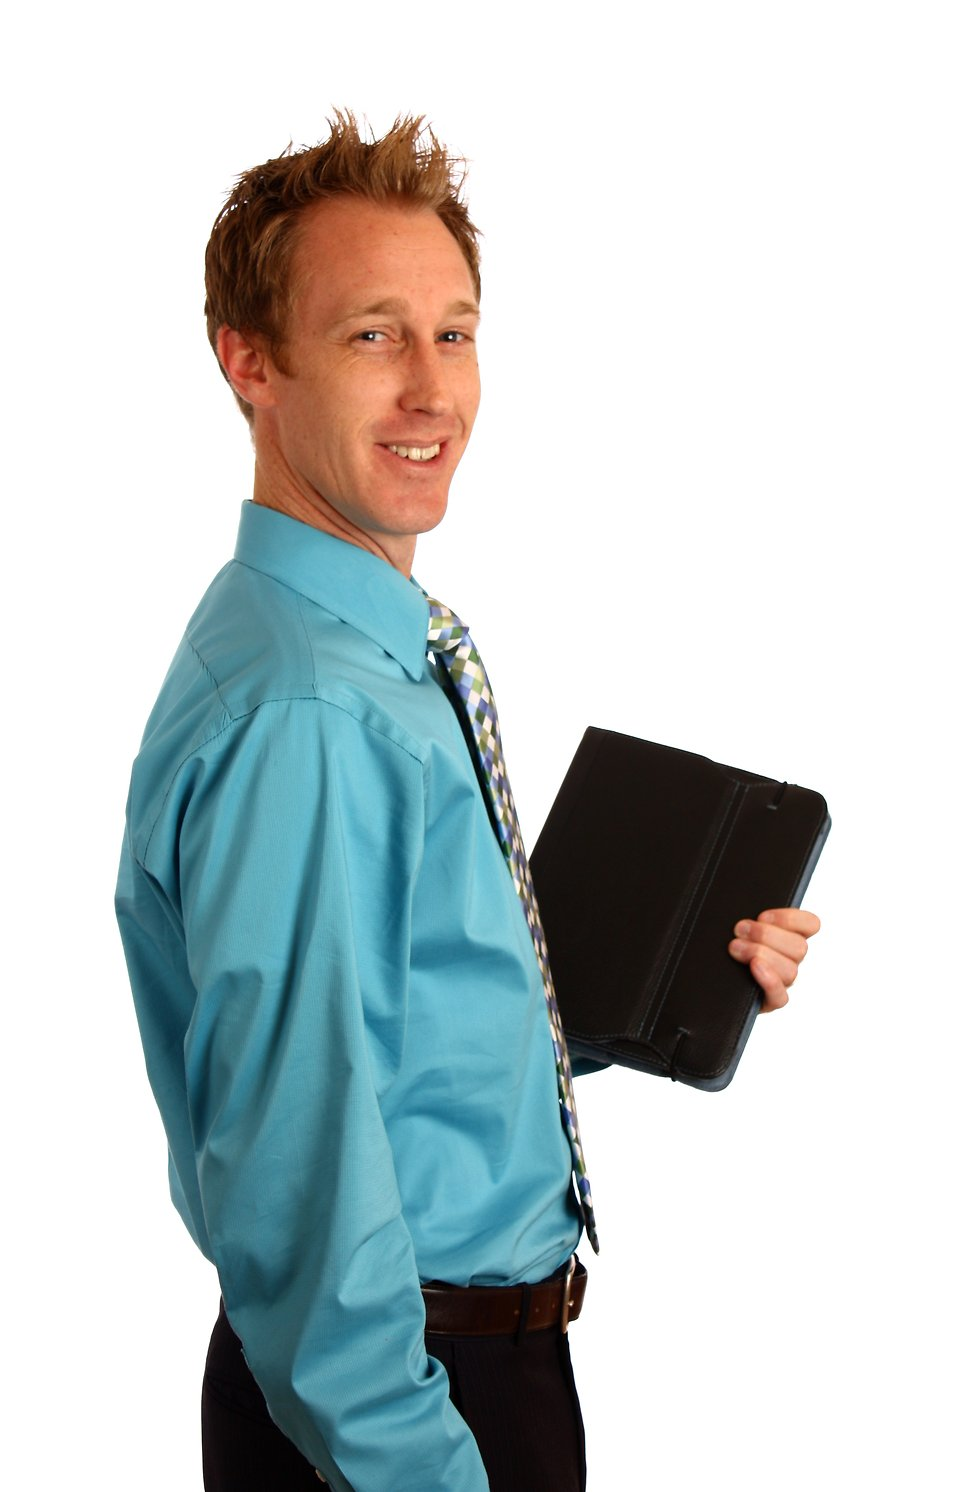 A young businessman holding a binder : Free Stock Photo